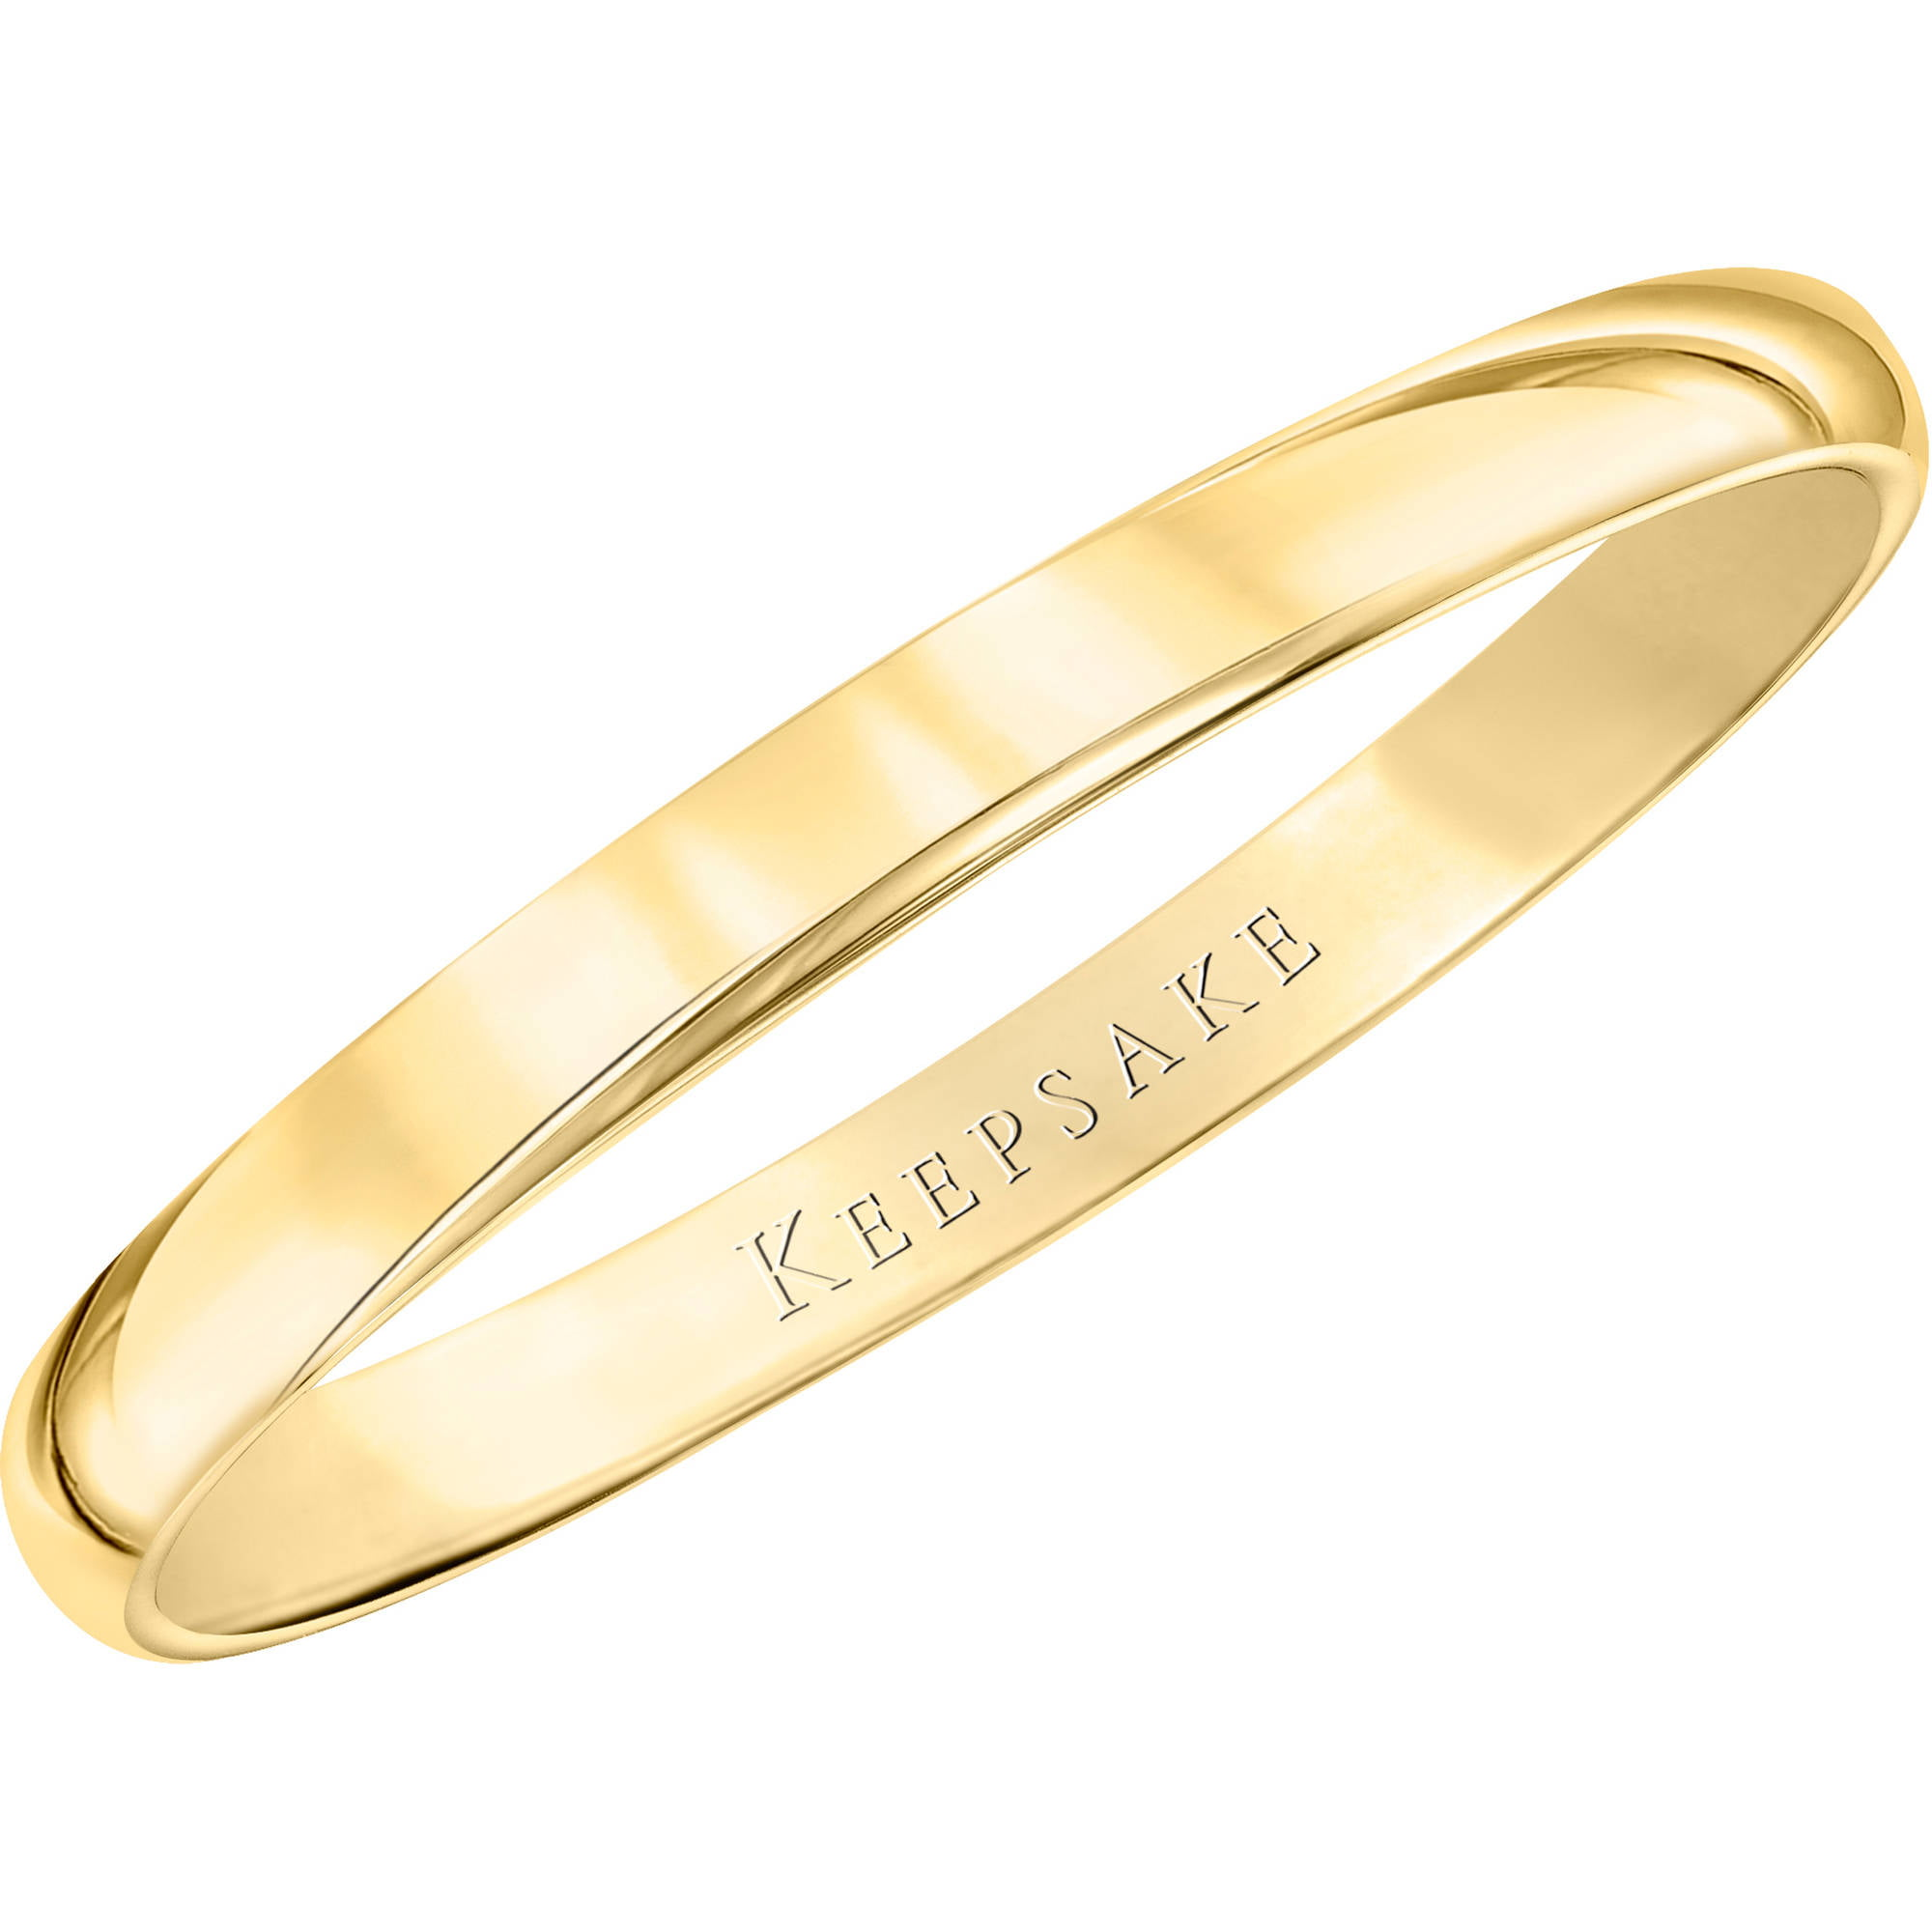 Keepsake 10kt Yellow Gold Wedding Band With HighPolish Finish 5mm